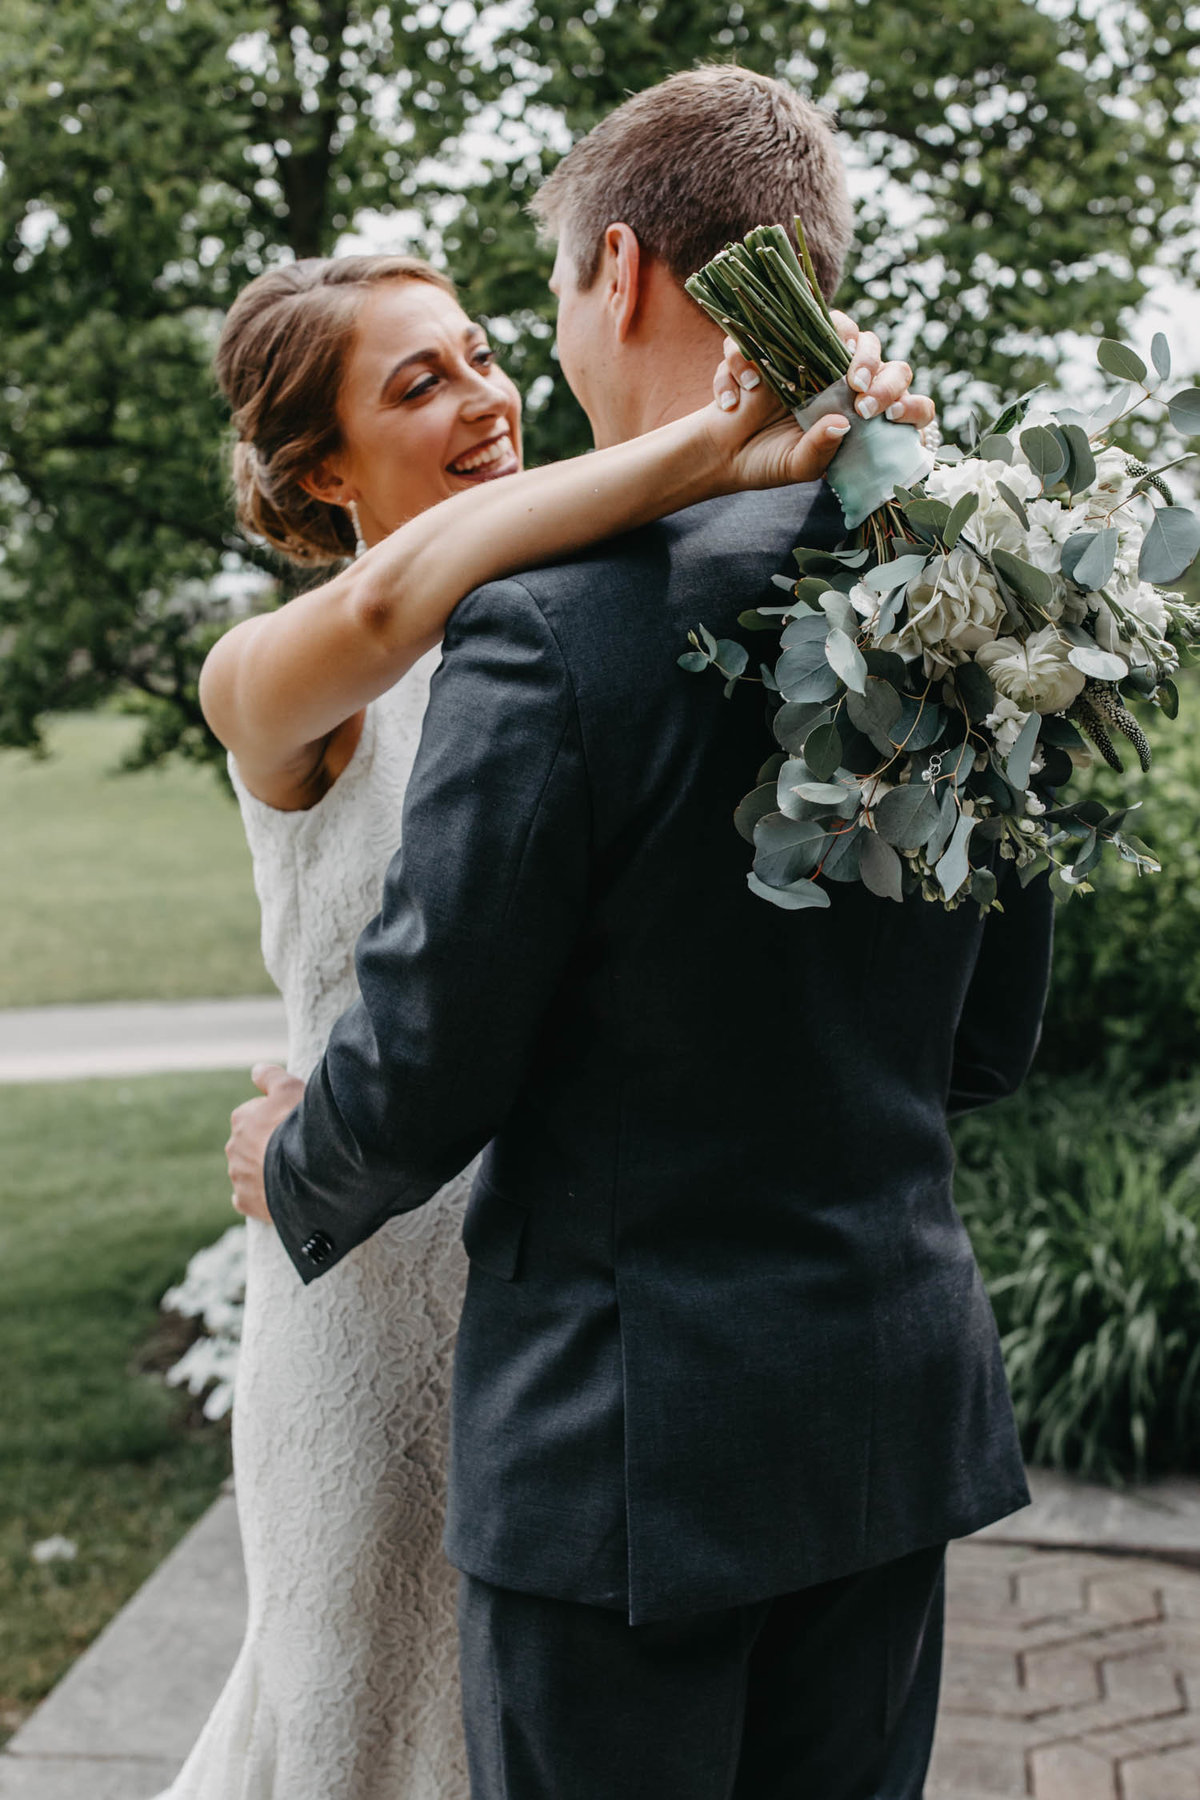 first-look-wedding-photo-ruffled-feathers-golf-course-2